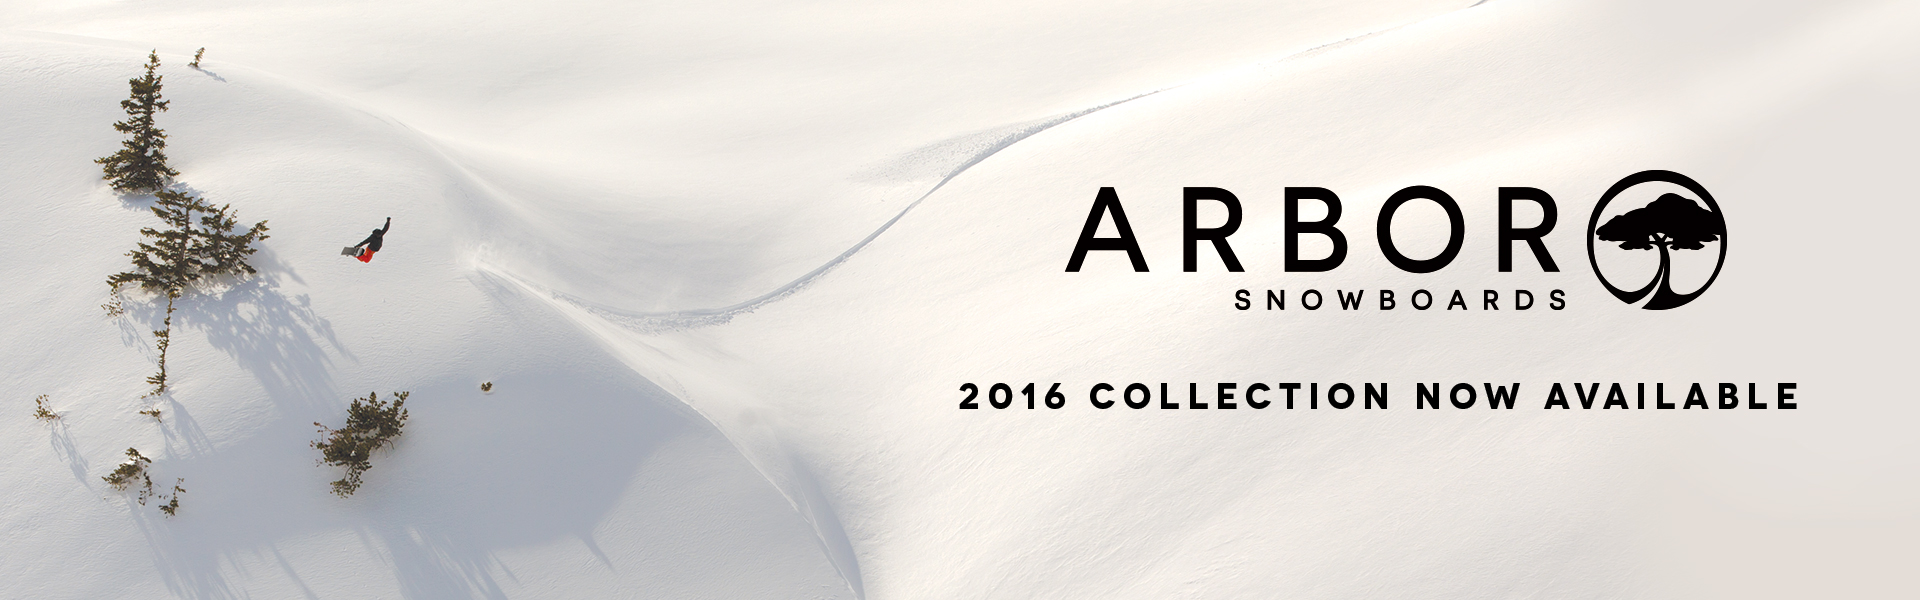 Arbor Snowboards Now In